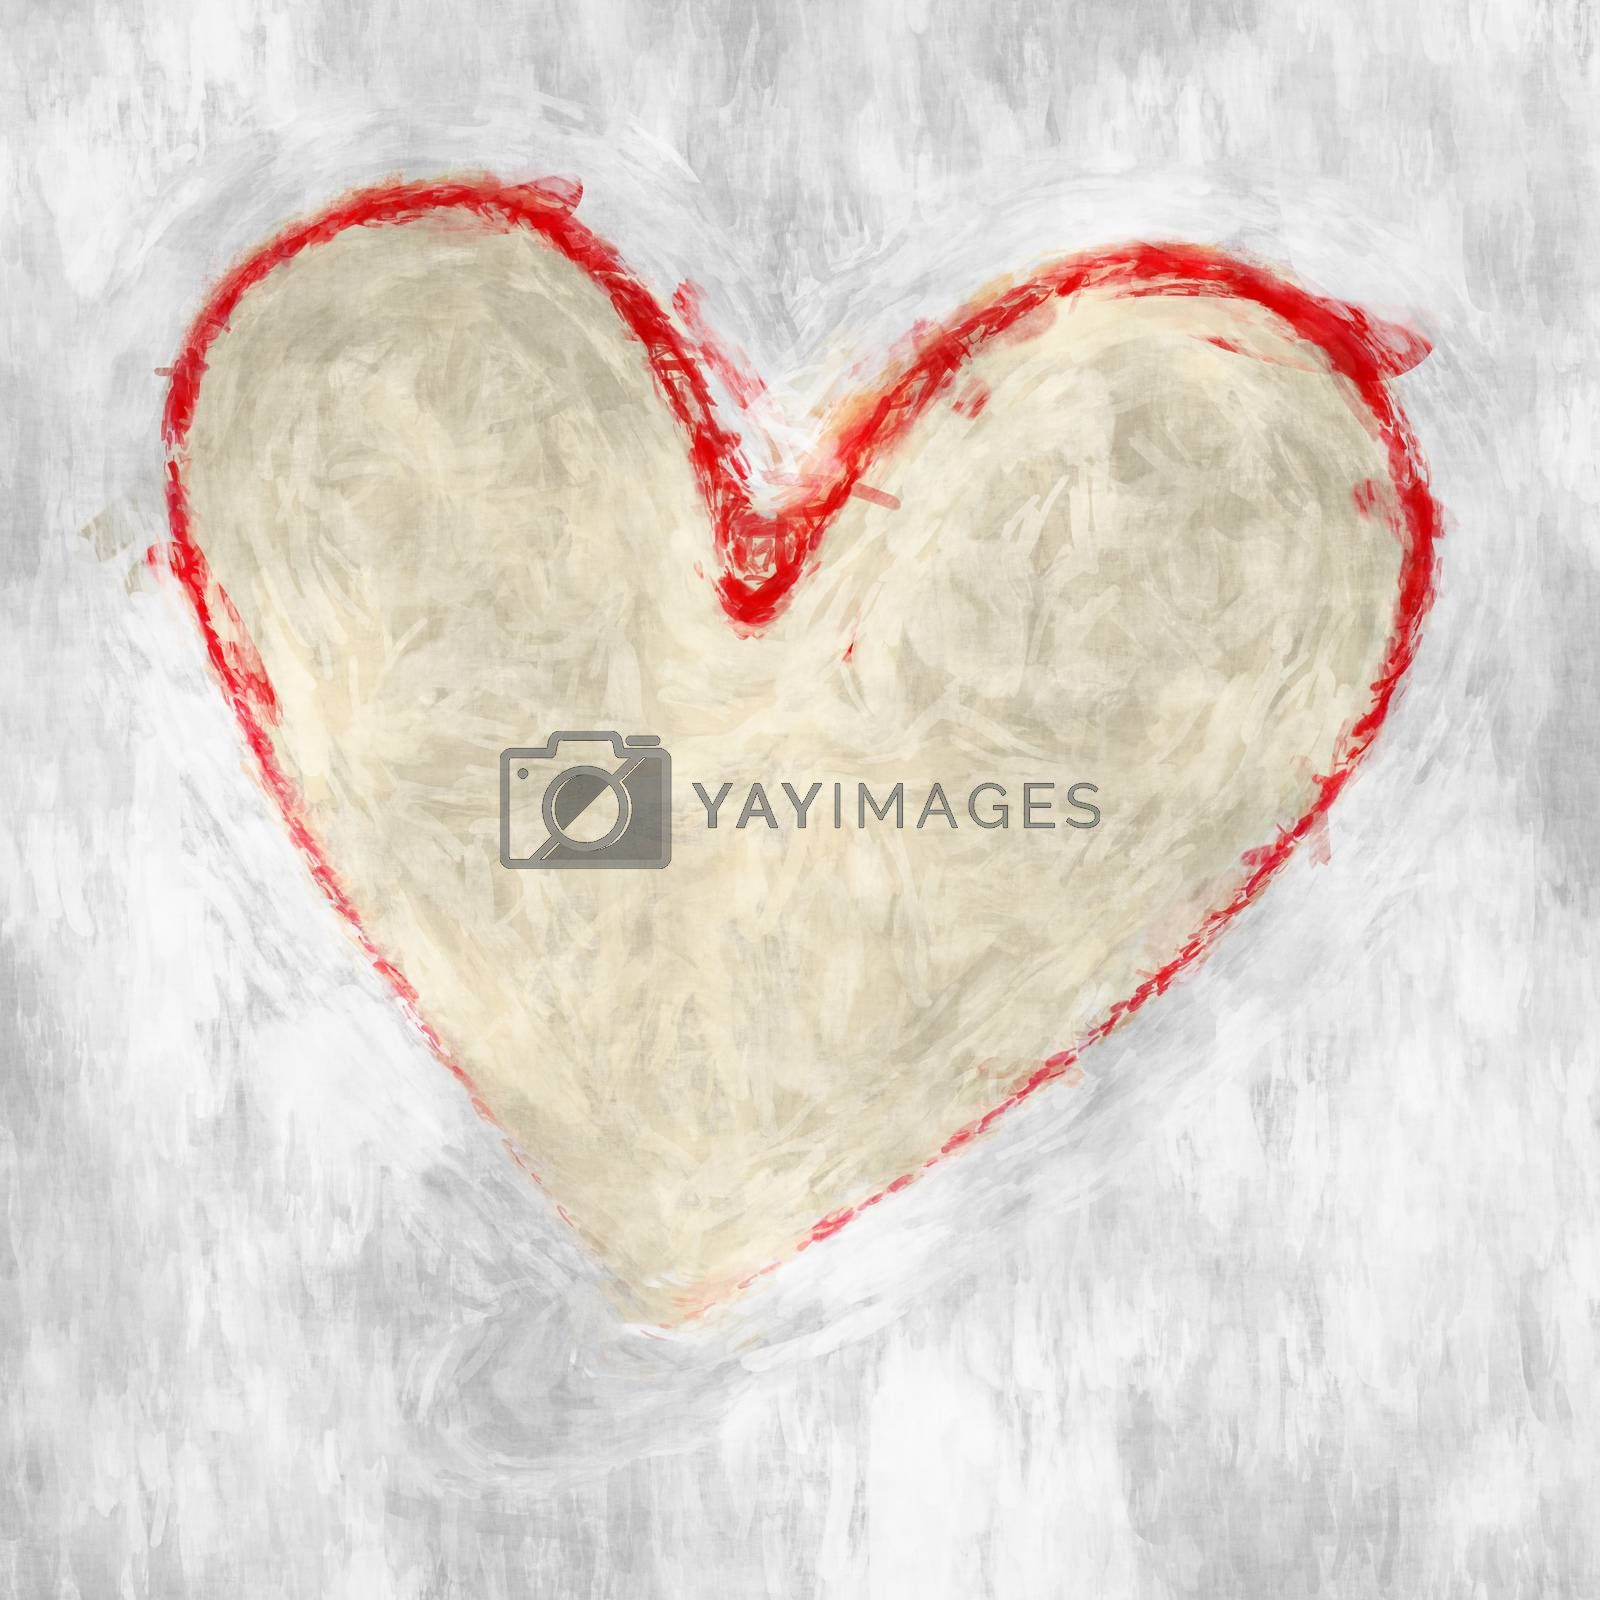 An image of a roughly painted red heart on white